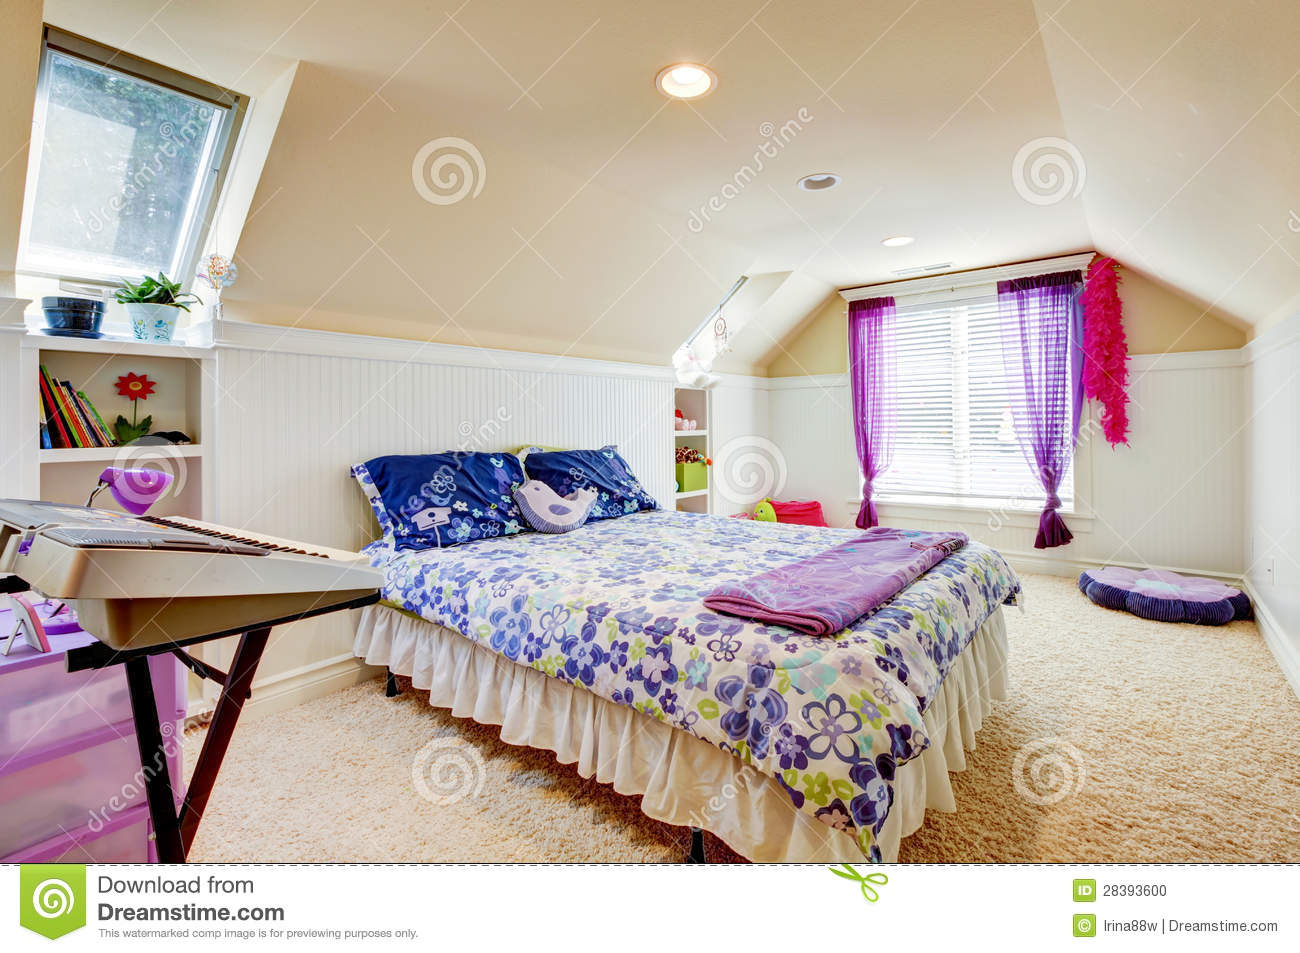 Girl bedroom with attic ceiling and beige carpet with toys Average cost of carpeting a 4 bedroom house